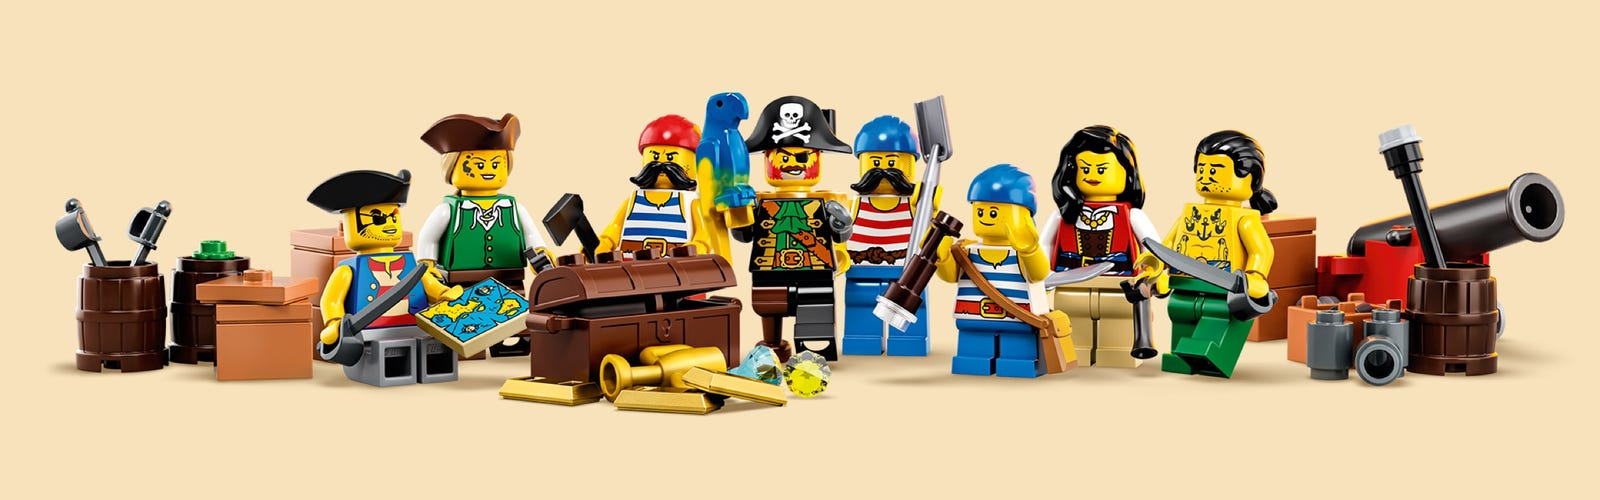 Pirates Of Barracuda Bay 21322 Ideas Buy Online At The Official Lego Shop Us